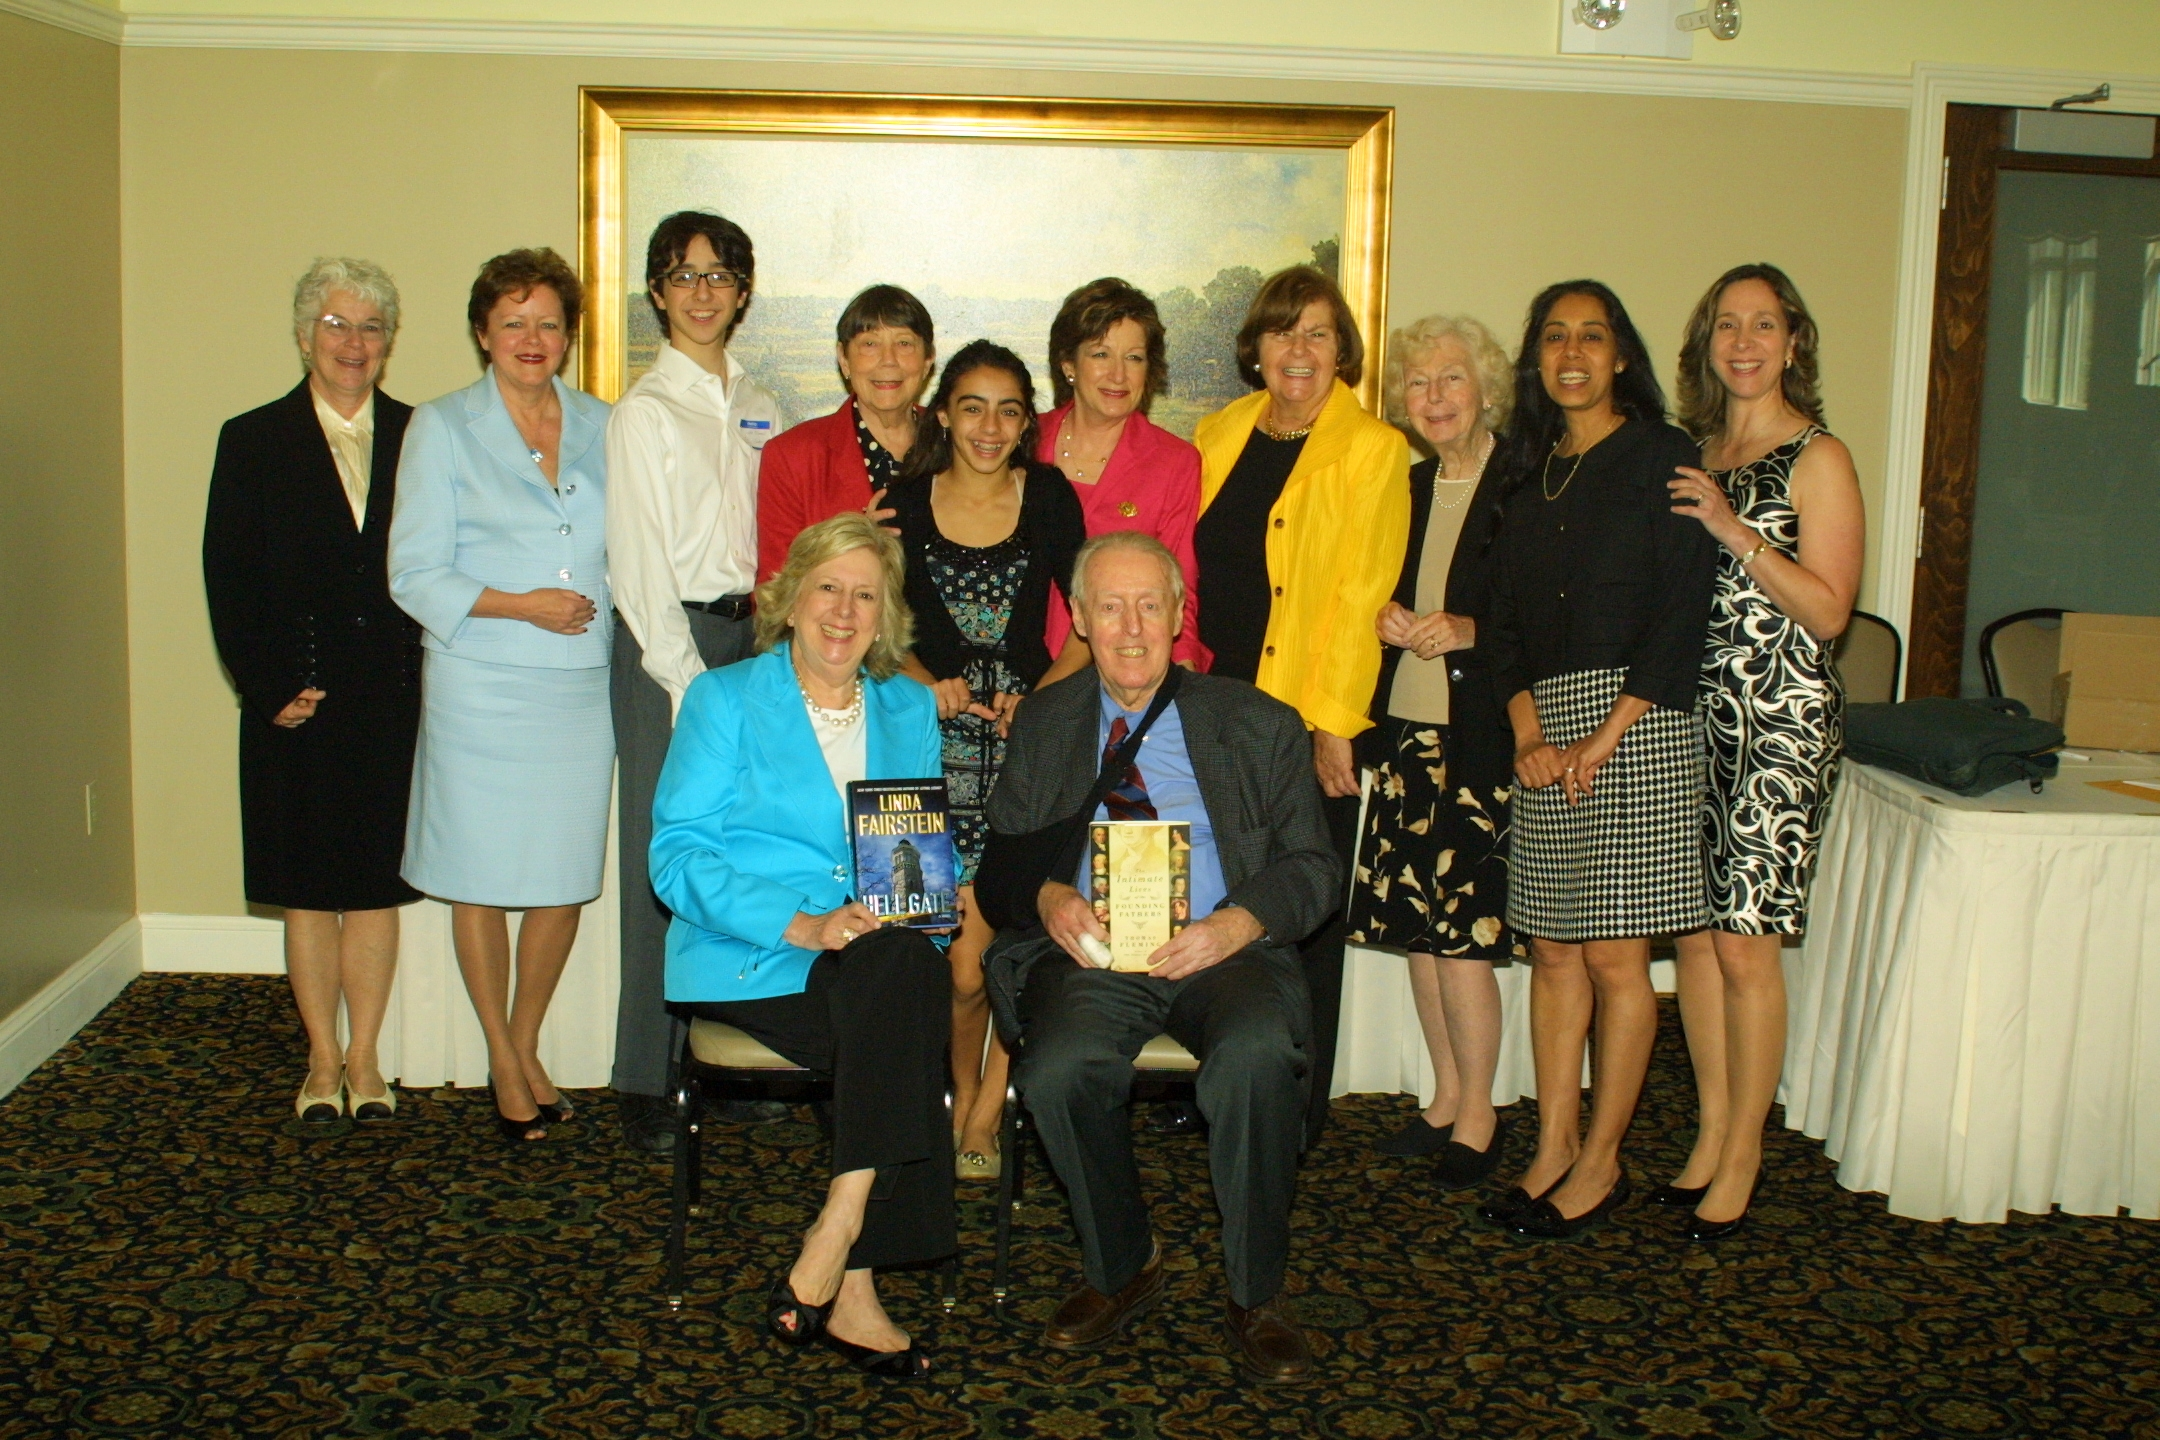 The Friends of the Library Board with Authors Linda Fairstein and Thomas Fleming (seated) L to R: Margaret Desiervo, Library Director Nancy Curtin, teen volunteer Luke O'Connell, FOL Vice President Nancy Wright, teen volunteer Annelise Meyding, FOL President Amy G. Bass, Vice President Ellen Zimmerman, Secretary Eleanor Rybecky, Treasurer Tinu Thakore, Pamela O'Connell